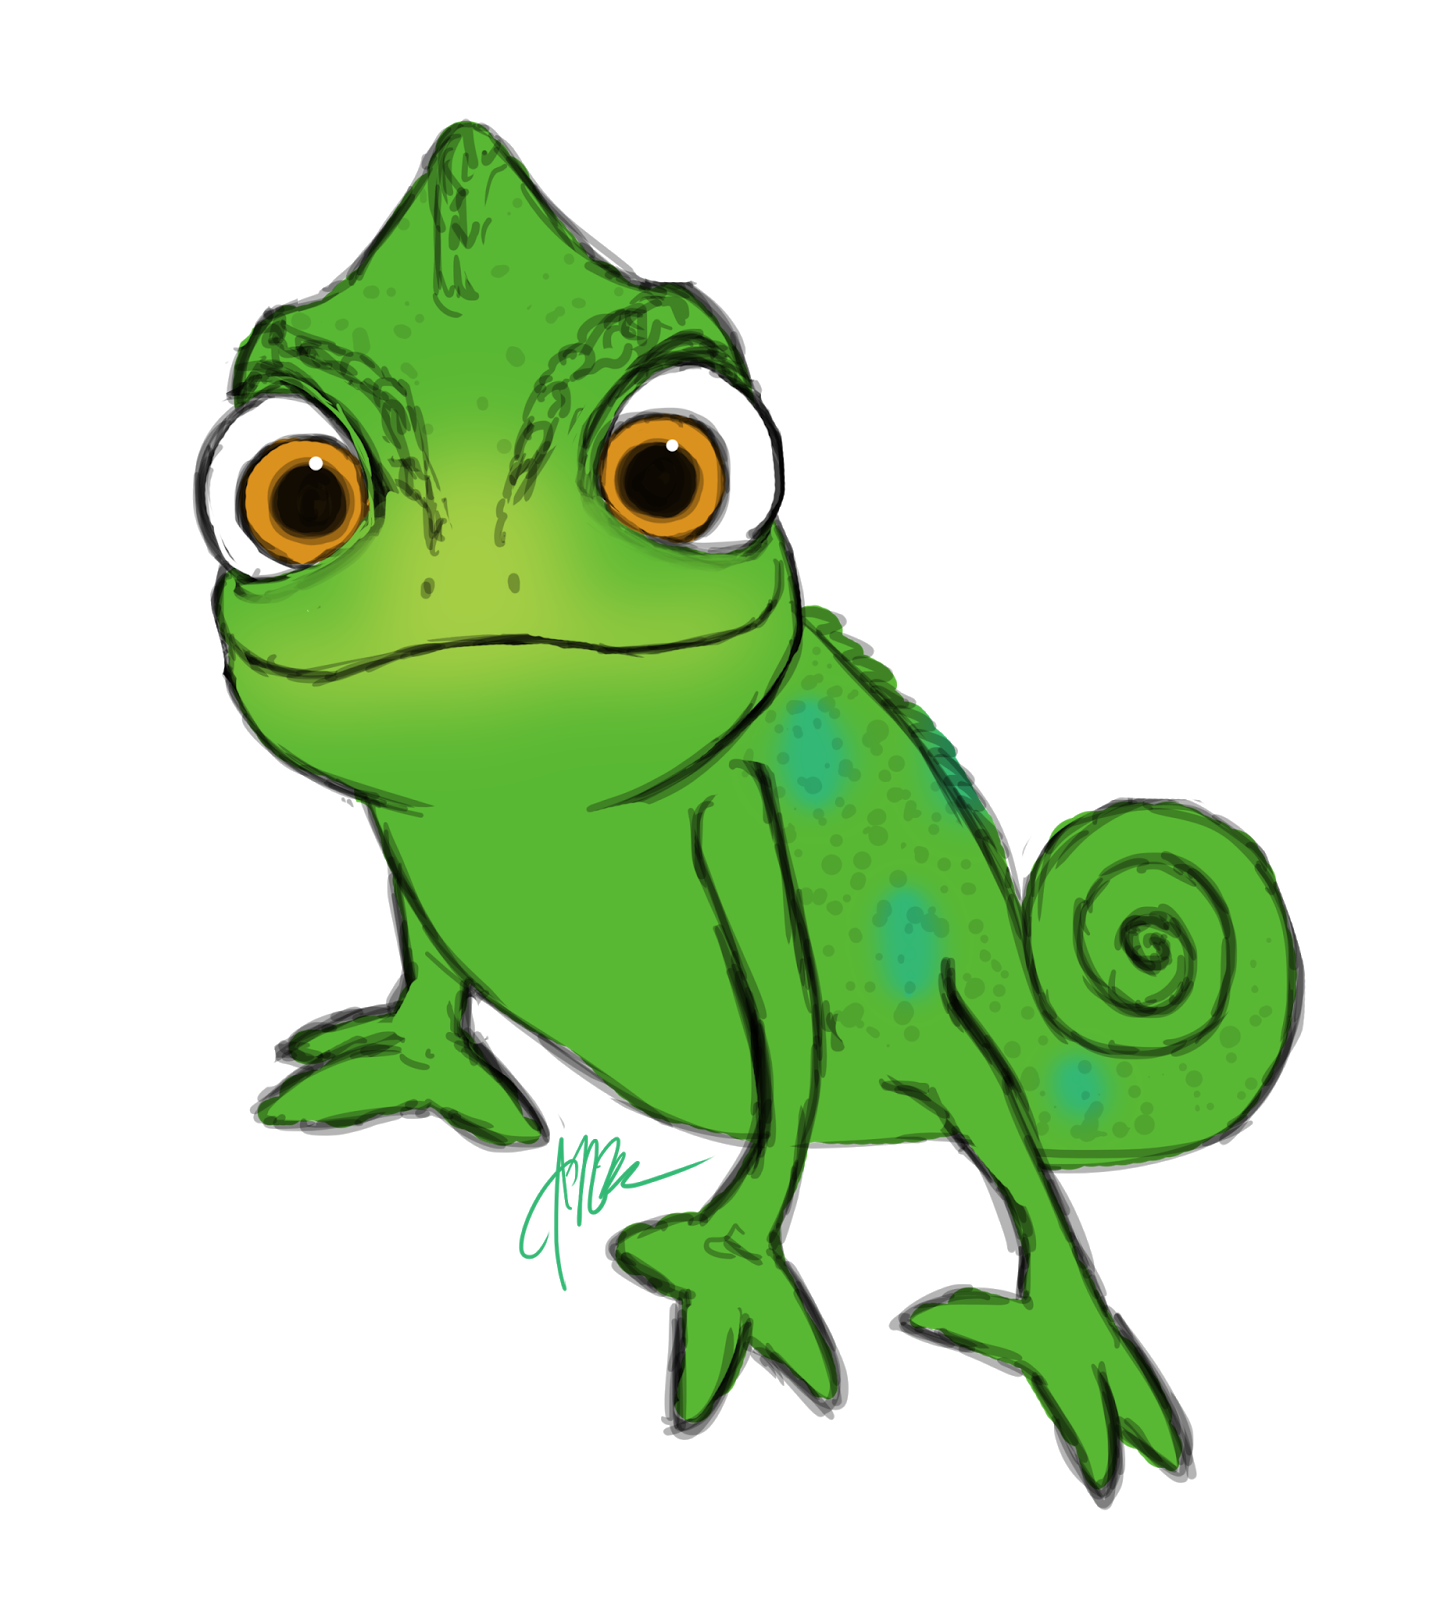 Chameleon clipart rapunzel pascal. Images for tangled smiling